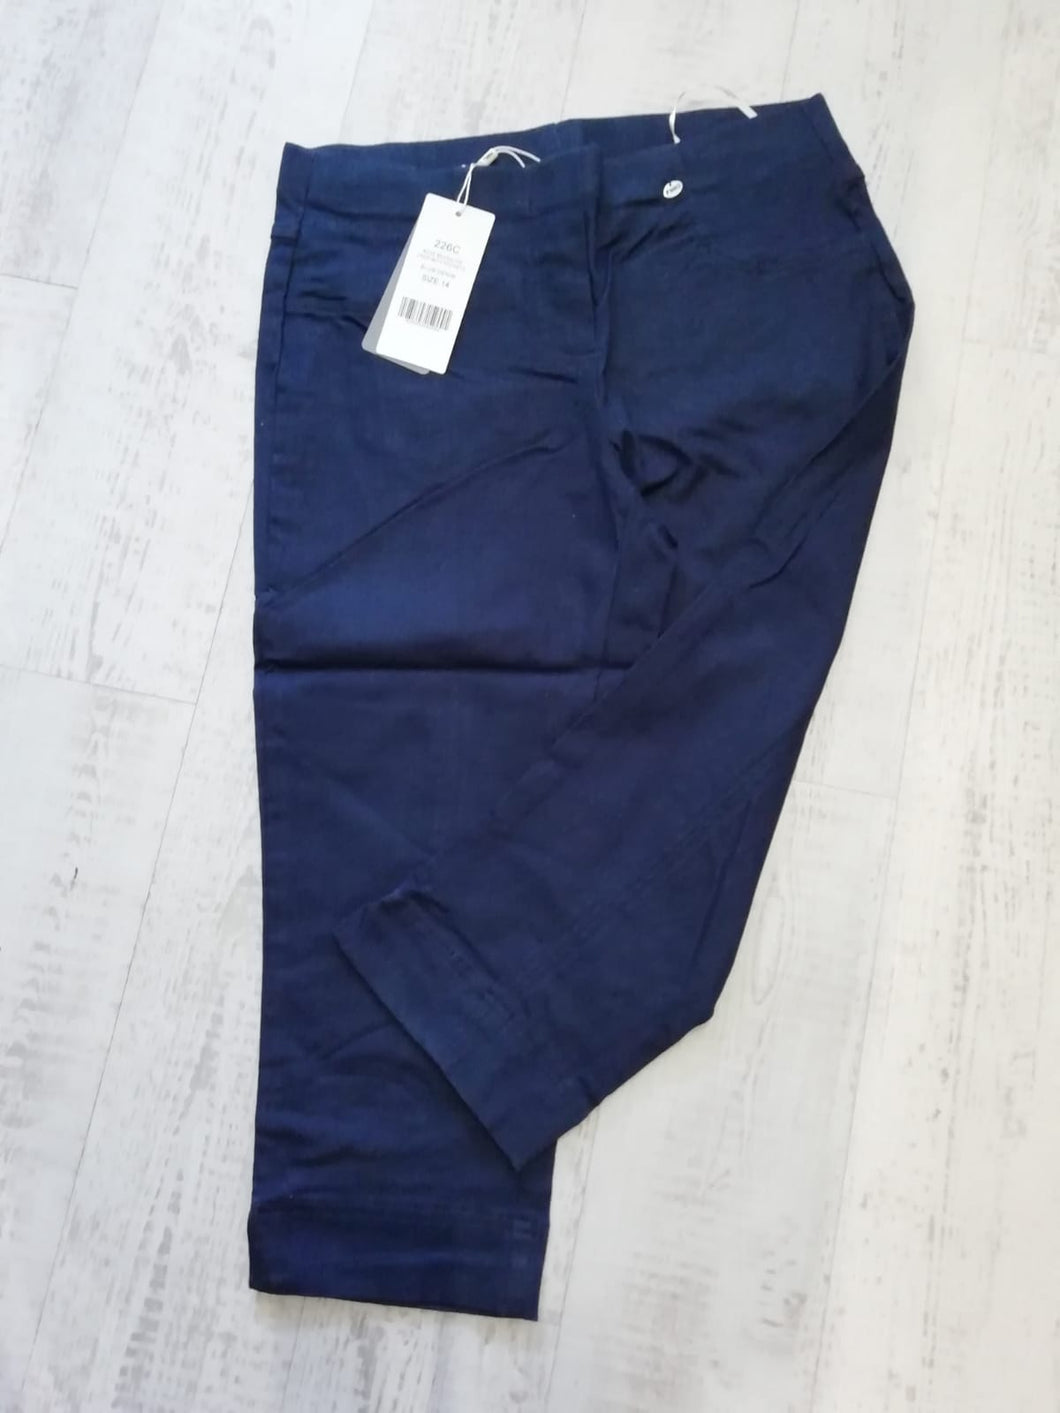 Pinns Denim Crop Trouser - size 8